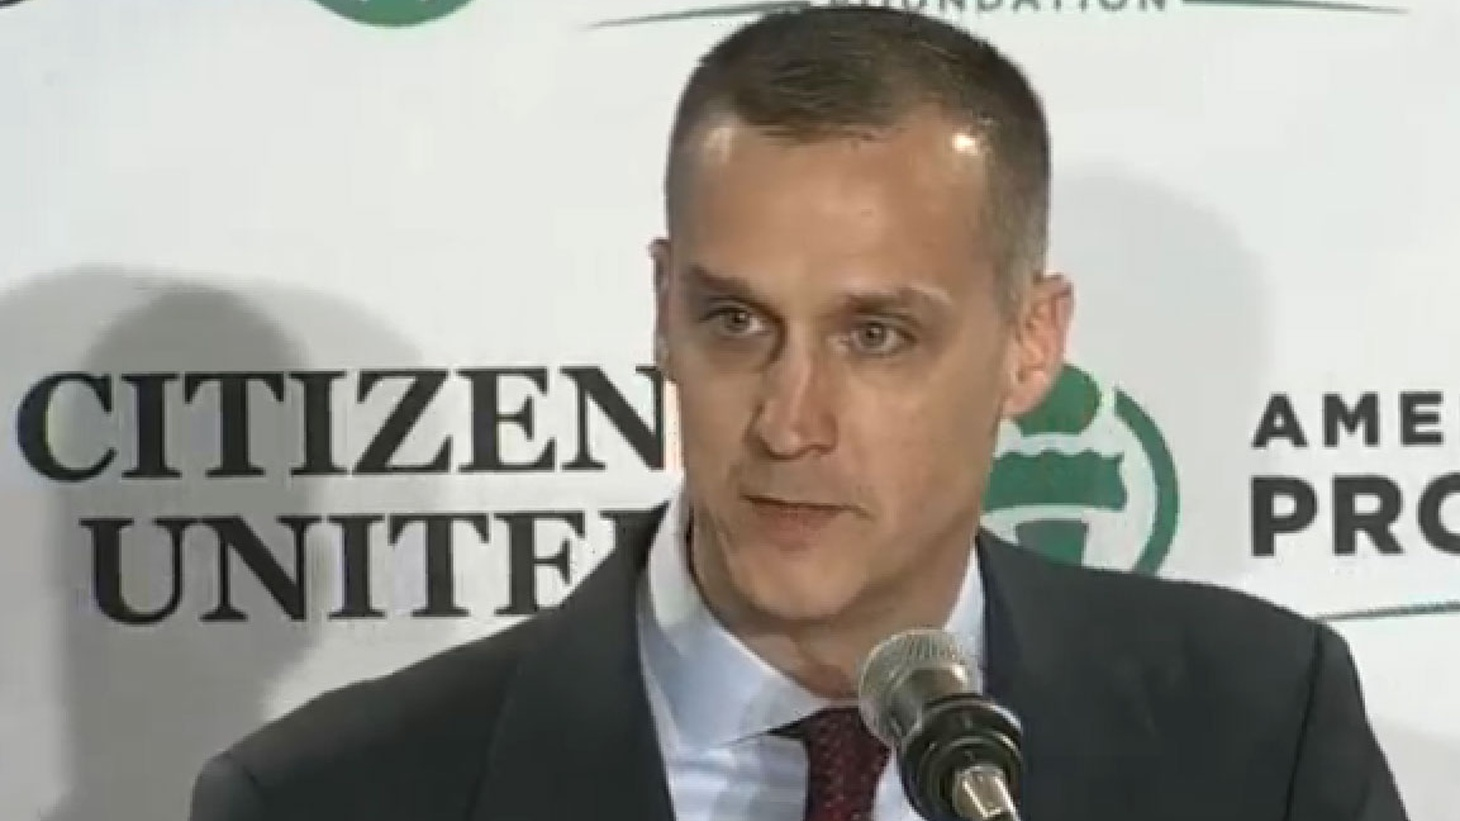 Donald Trump's campaign manager is in trouble, but Trump is backing him to the hilt.